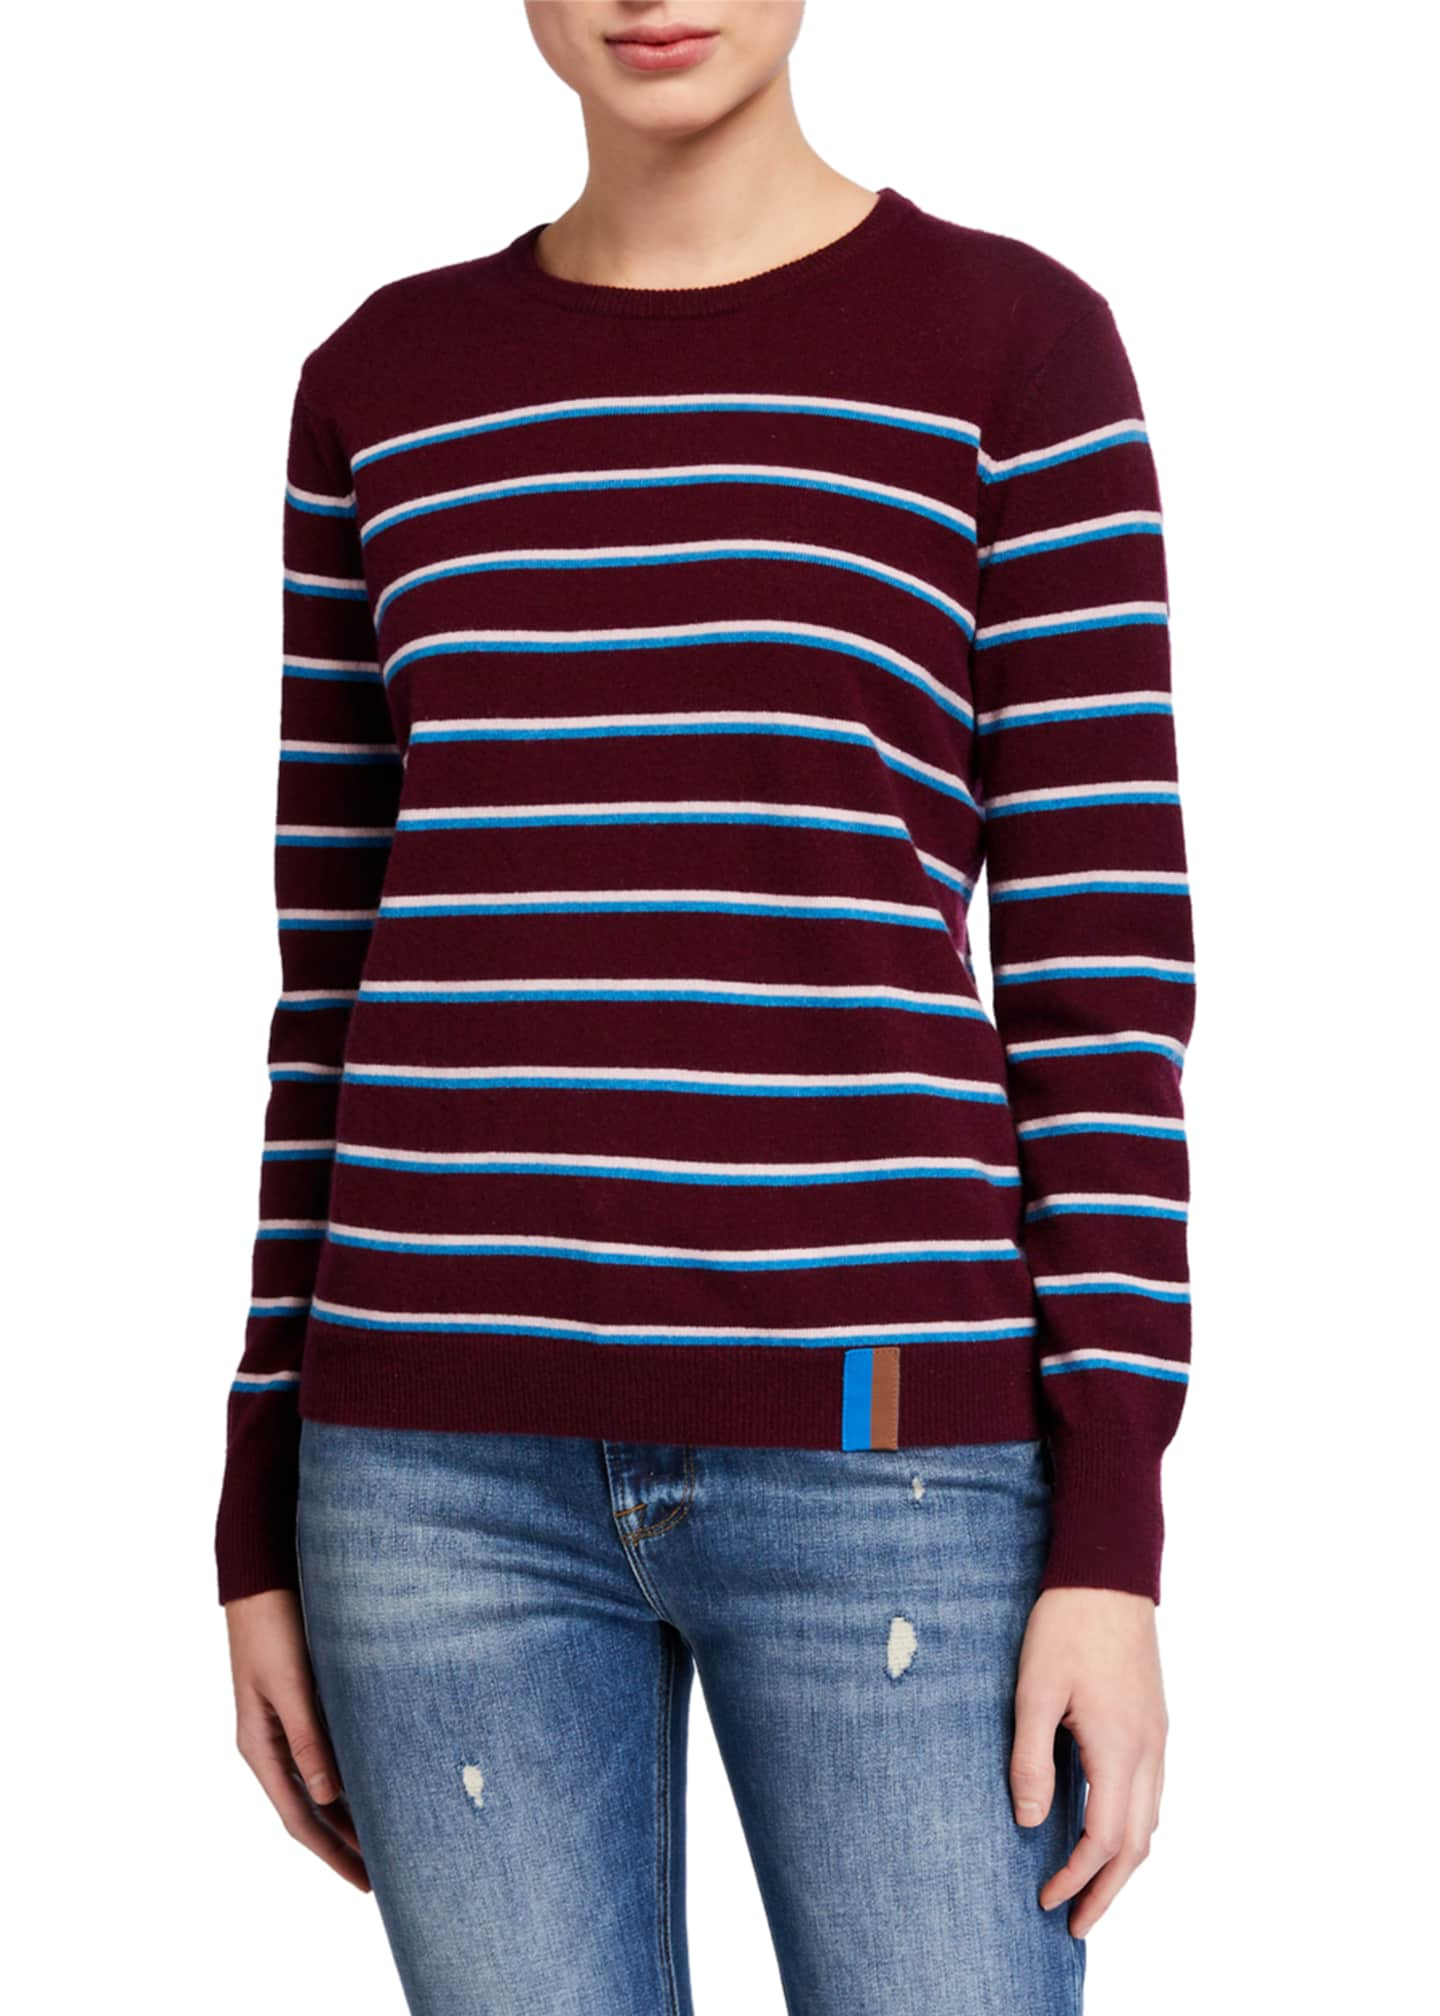 Image 1 of 4: The Samara Striped Crewneck Sweater